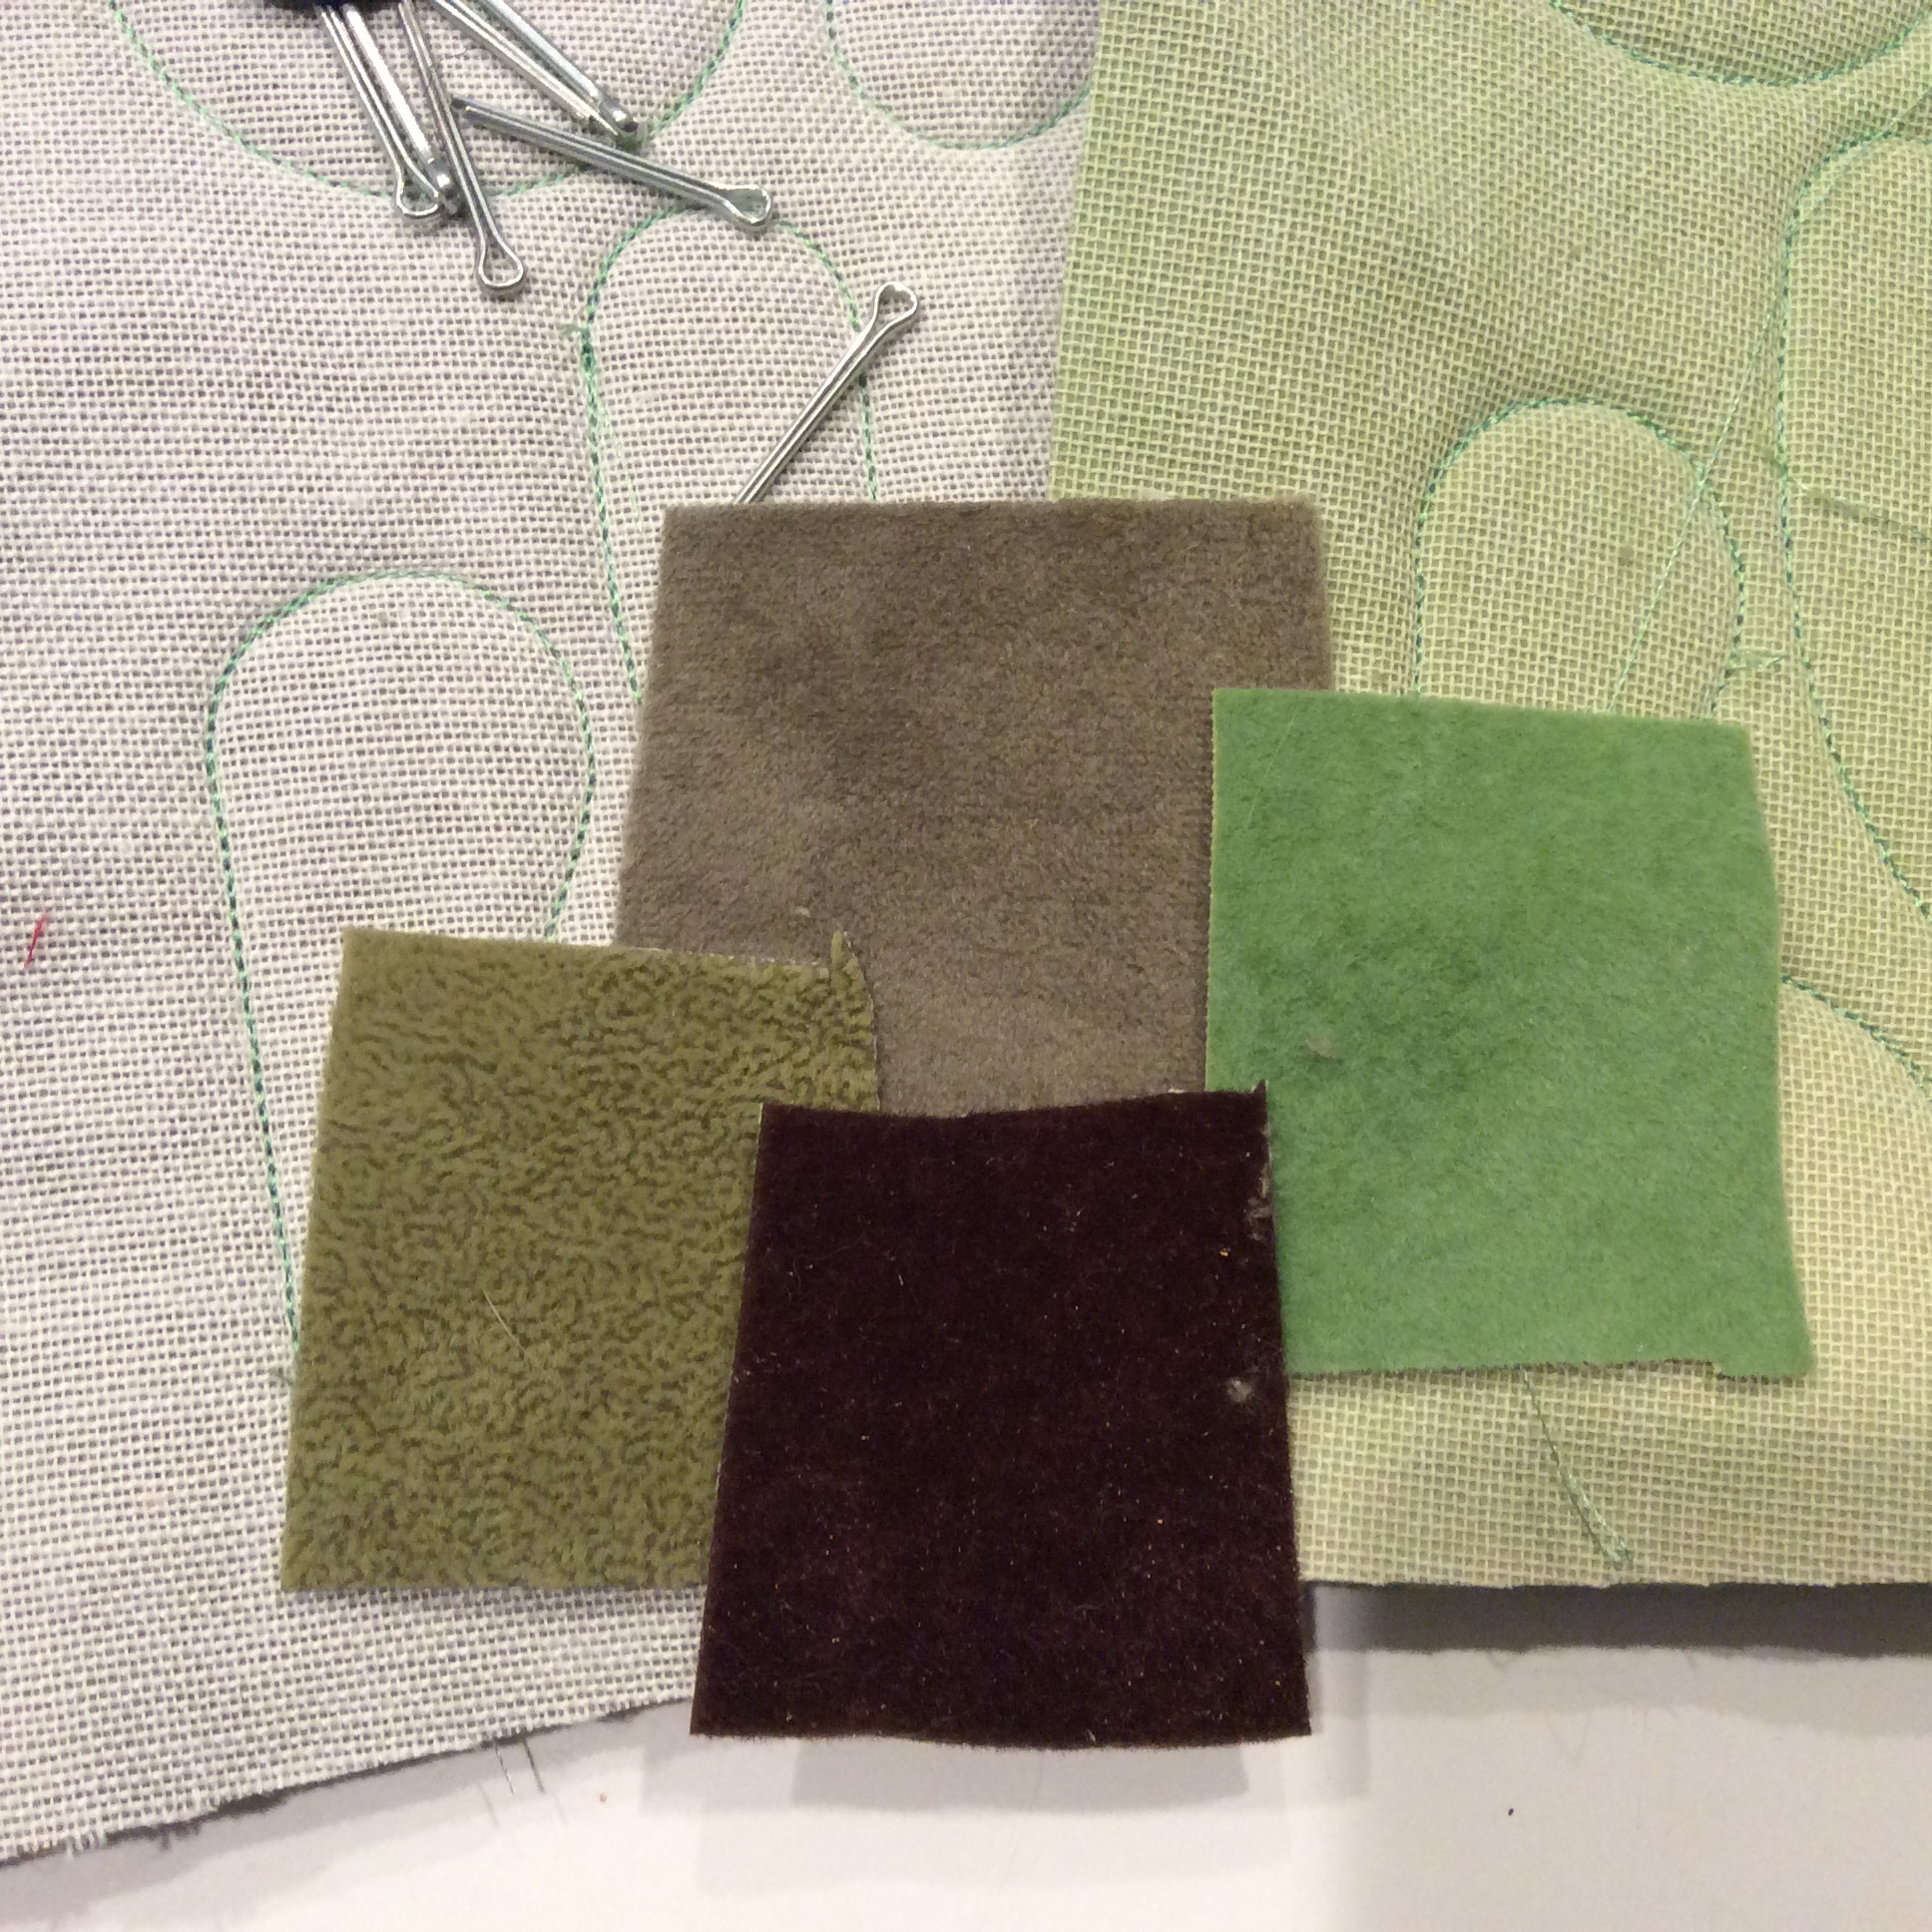 Swatches of upholstery velvet.